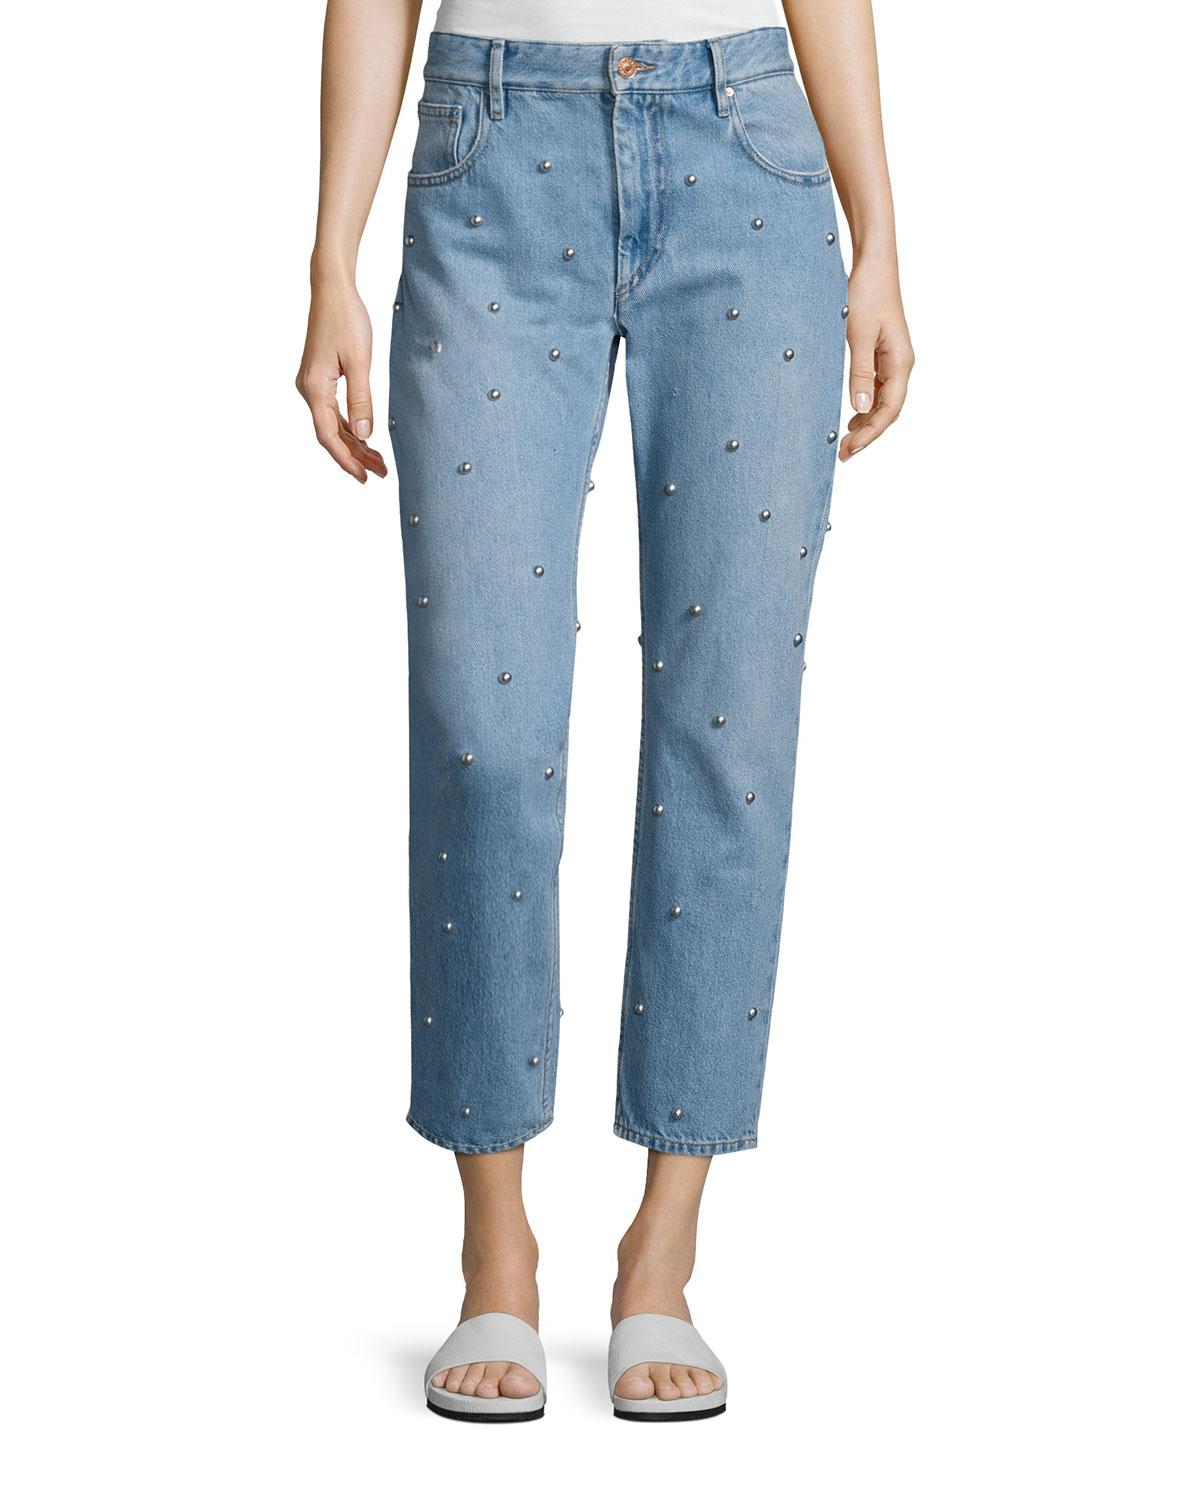 Califfy embellished jeans Isabel Marant Outlet Reliable Sale Get To Buy Free Shipping Pictures Big Discount For Sale 3gfyo2mpP